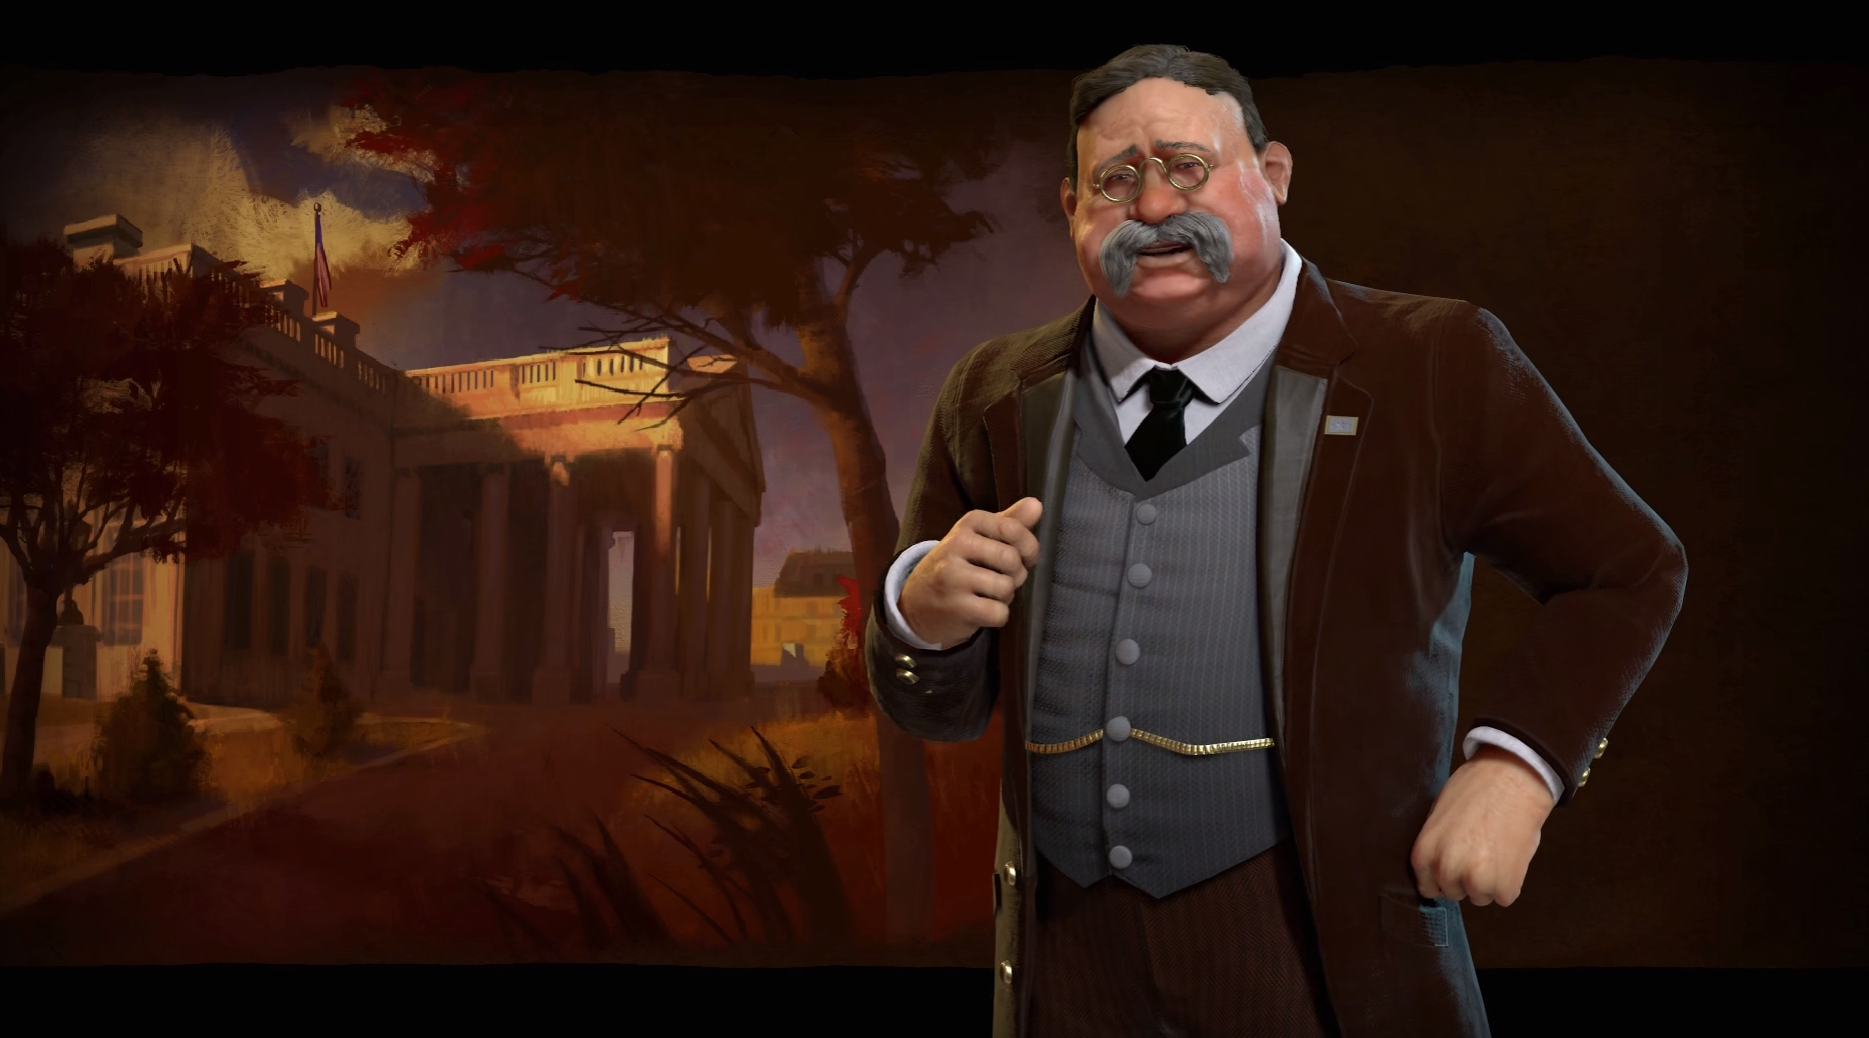 Civ 6 Leader Teddy Roosevelt Before Feedback